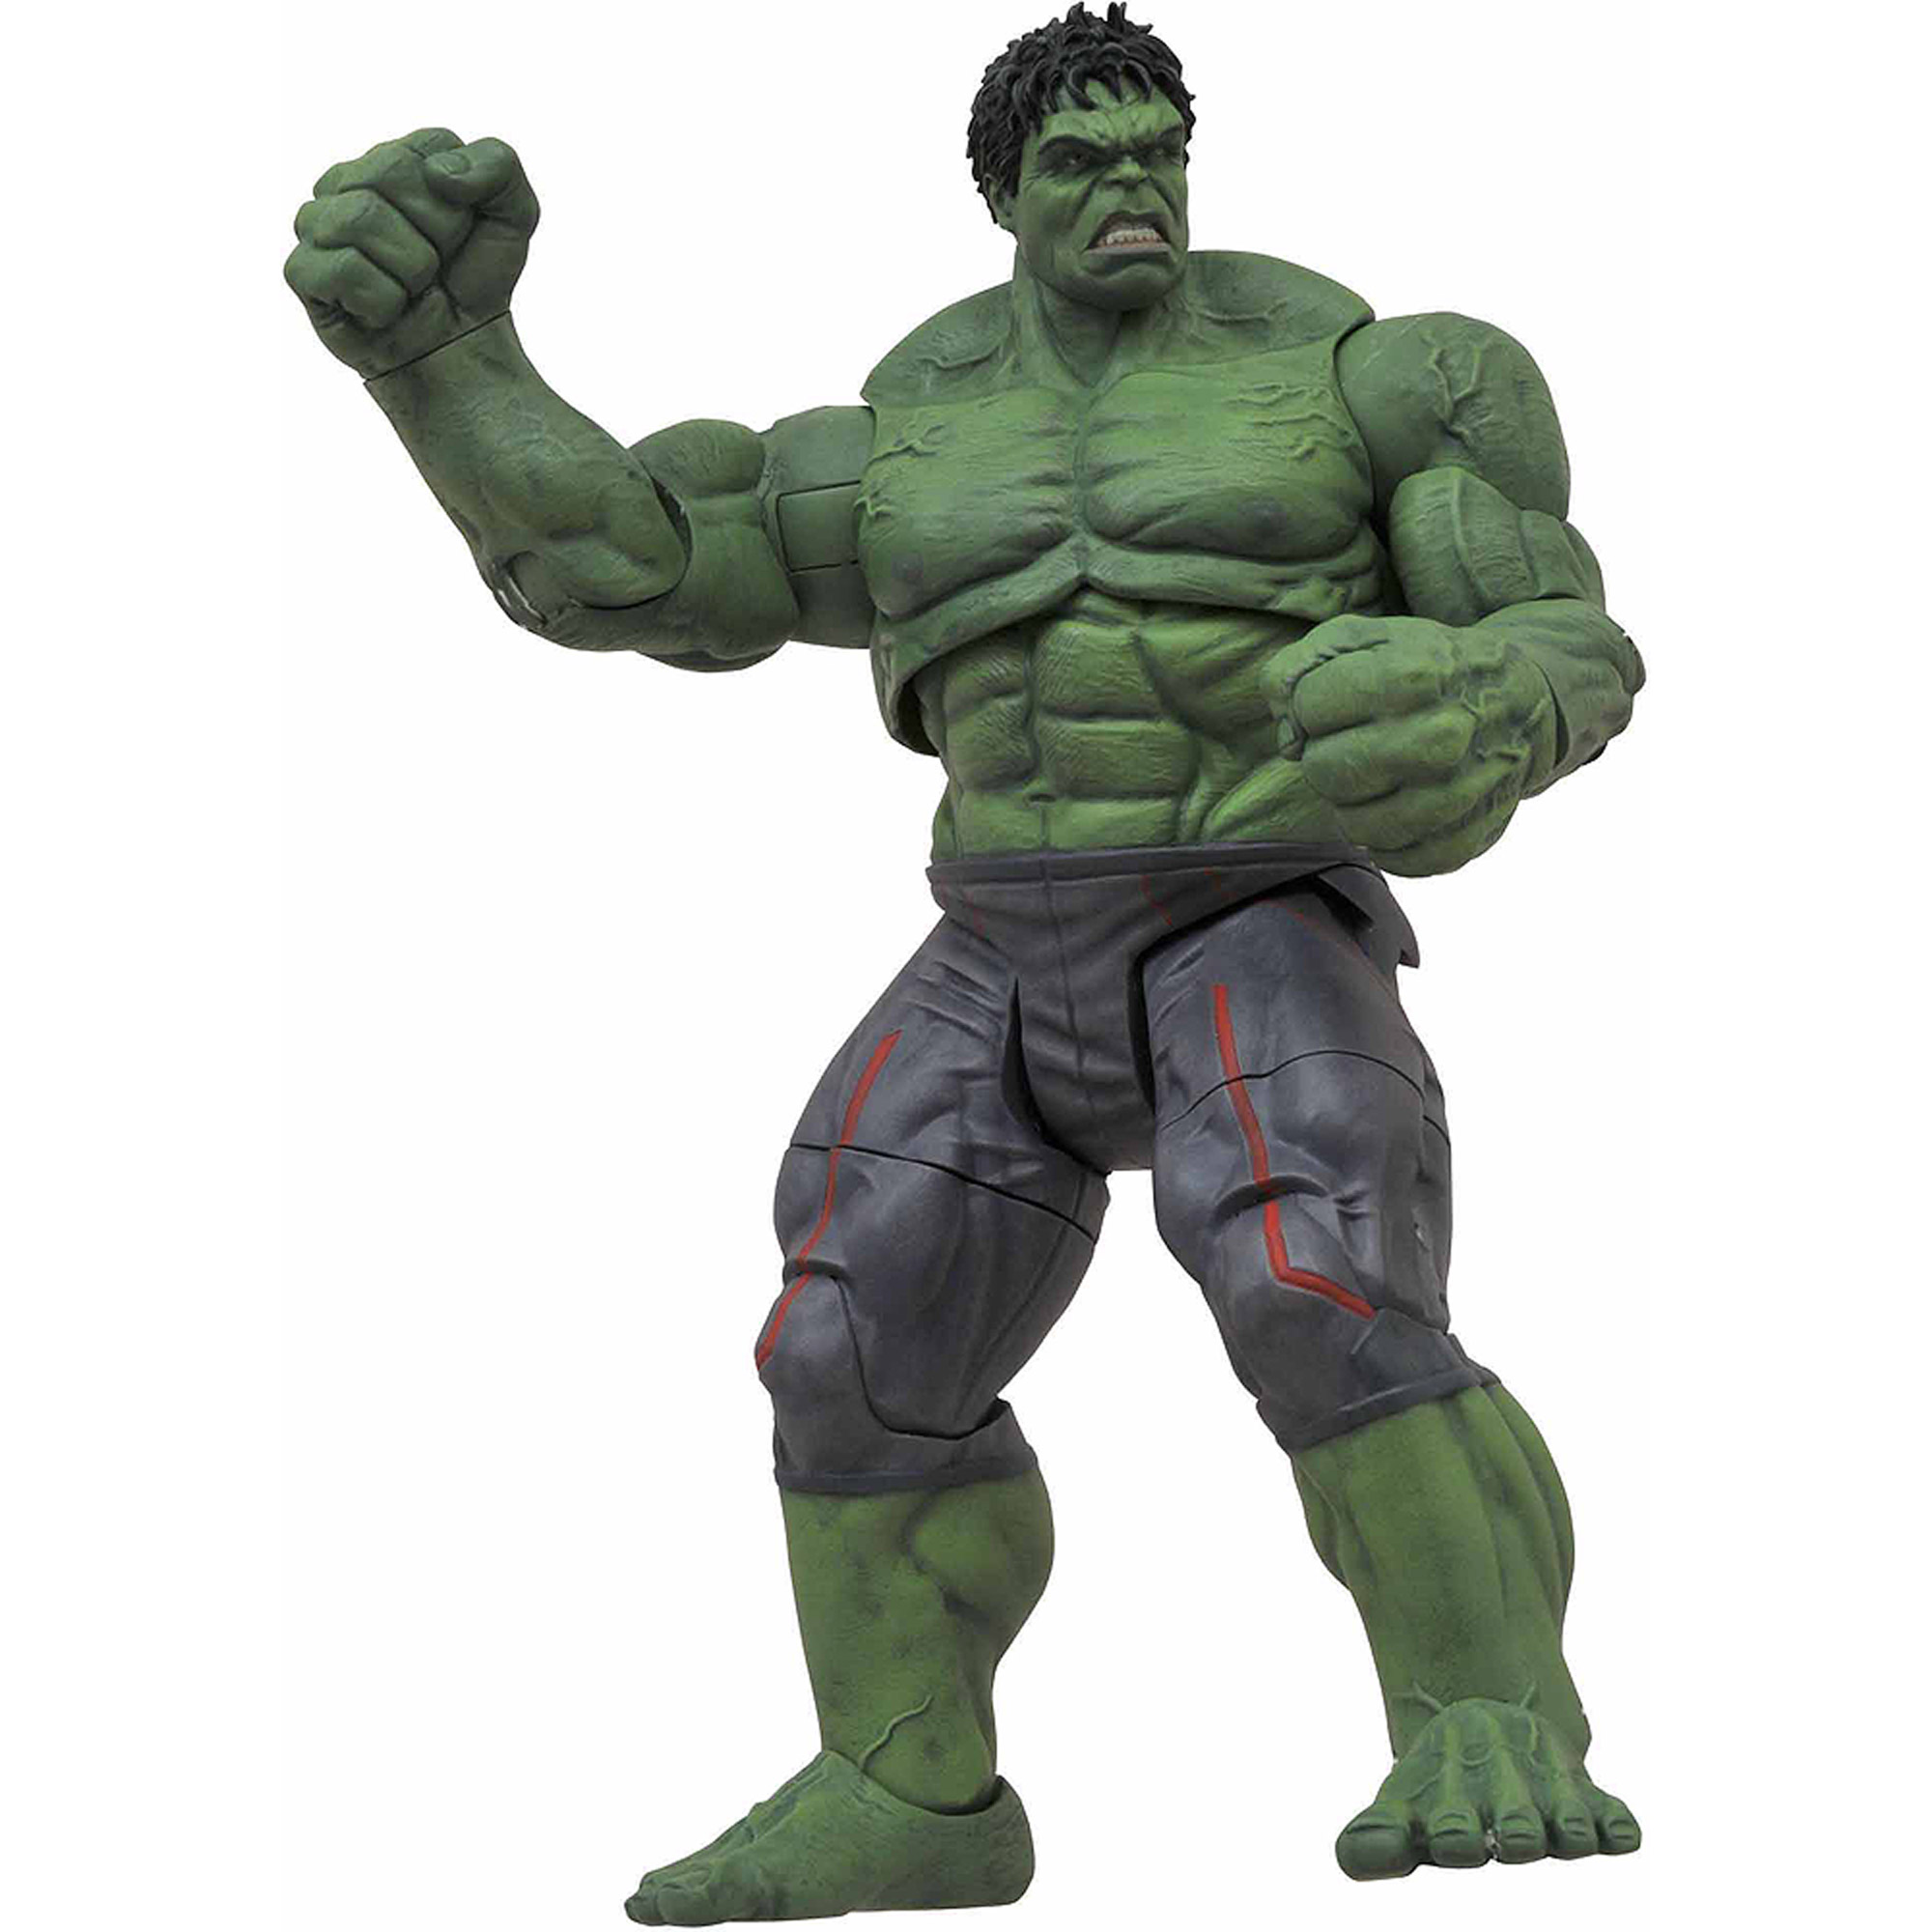 Diamond Select Toys Marvel Select Avengers: Age of Ultron Hulk Action Figure